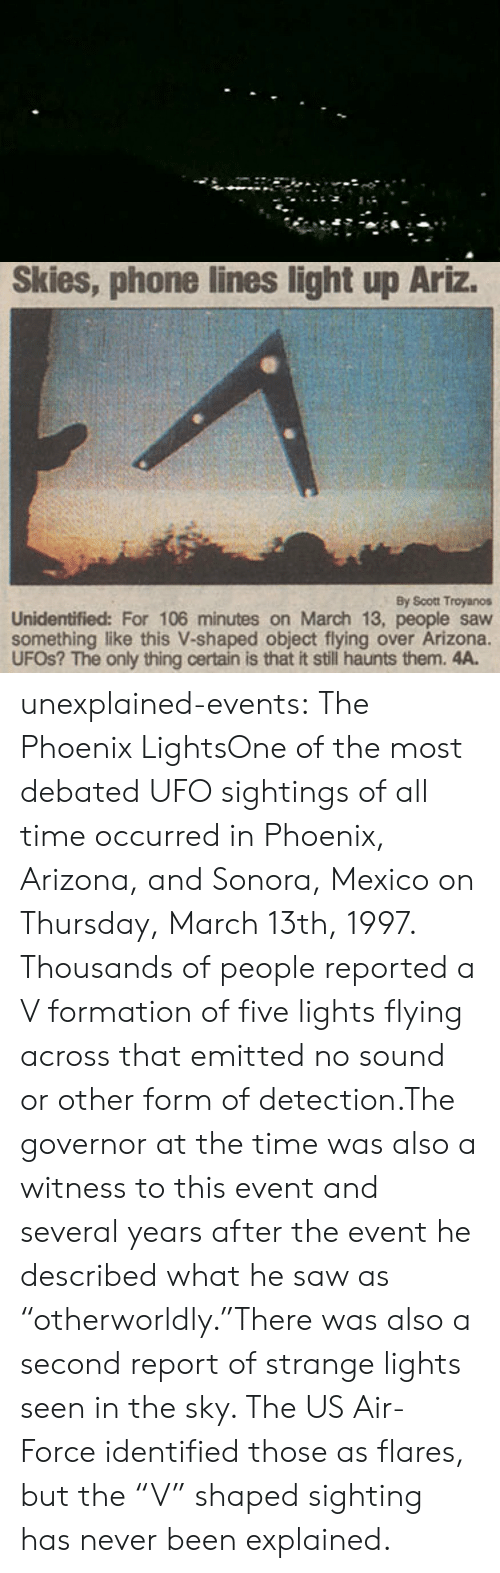 """Phone, Saw, and Target: Skies, phone lines light up Ariz.  By Scott Troyanos  Unidentified: For 106 minutes on March 13, people saw  something like this V-shaped object flying over Arizona.  UFOS? The only thing certain is that it still haunts them. 4A. unexplained-events:  The Phoenix LightsOne of the most debated UFO sightings of all time occurred in Phoenix, Arizona, and Sonora, Mexico on Thursday, March 13th, 1997. Thousands of people reported a V formation of five lights flying across that emitted no sound or other form of detection.The governor at the time was also a witness to this event and several years after the event he described what he saw as  """"otherworldly.""""There was also a second report of strange lights seen in the sky. The US Air-Force identified those as flares, but the""""V"""" shaped sighting has never been explained."""